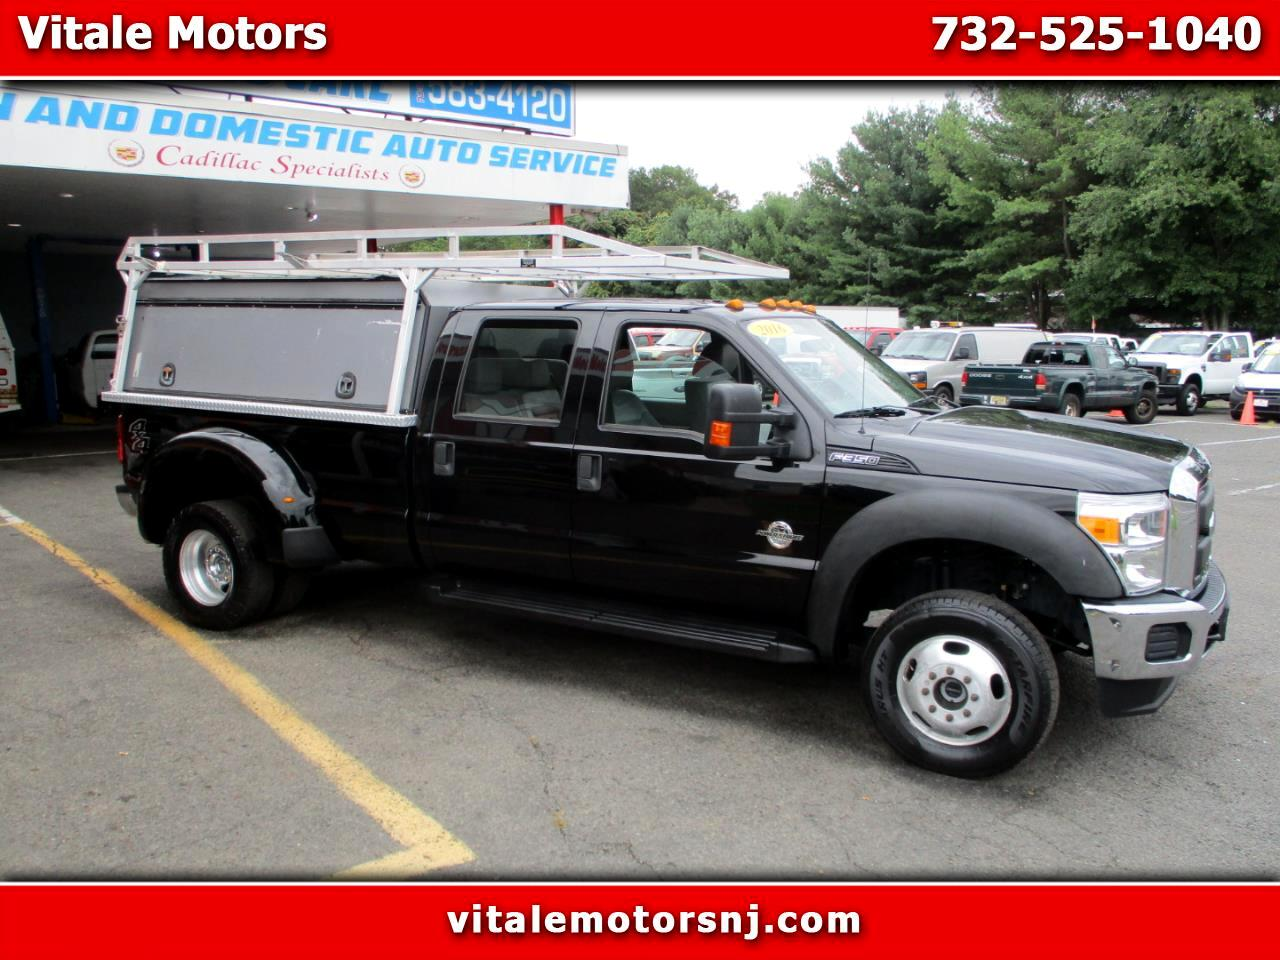 Used Cars South Amboy NJ | Used Cars & Trucks NJ | Vitale Motors